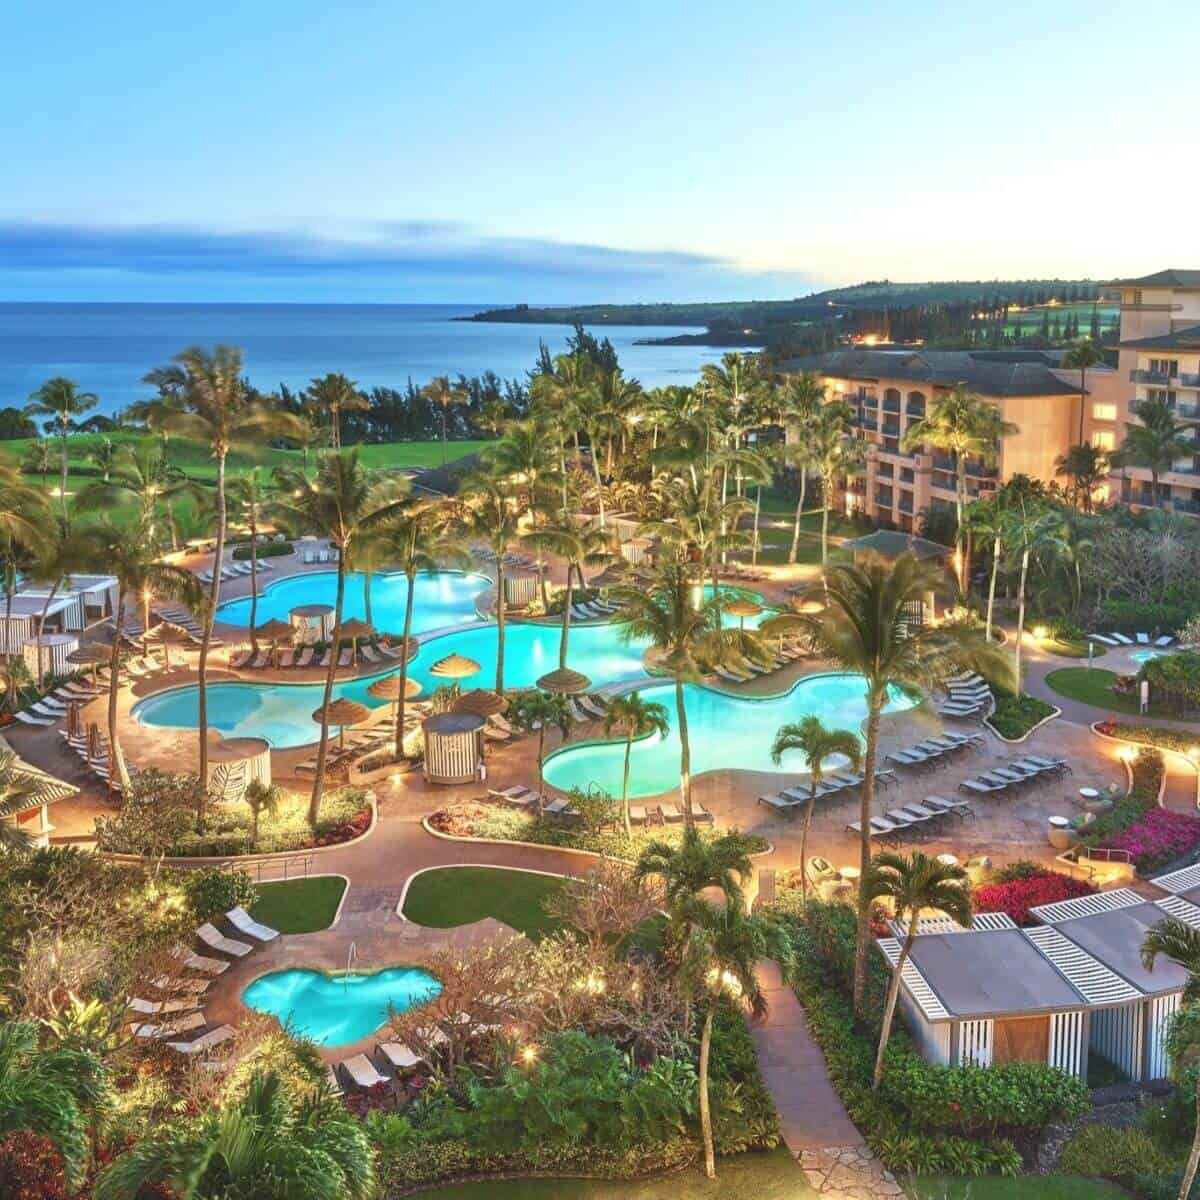 Aerial view of the pools at The Ritz-Carlton in Kapalua.